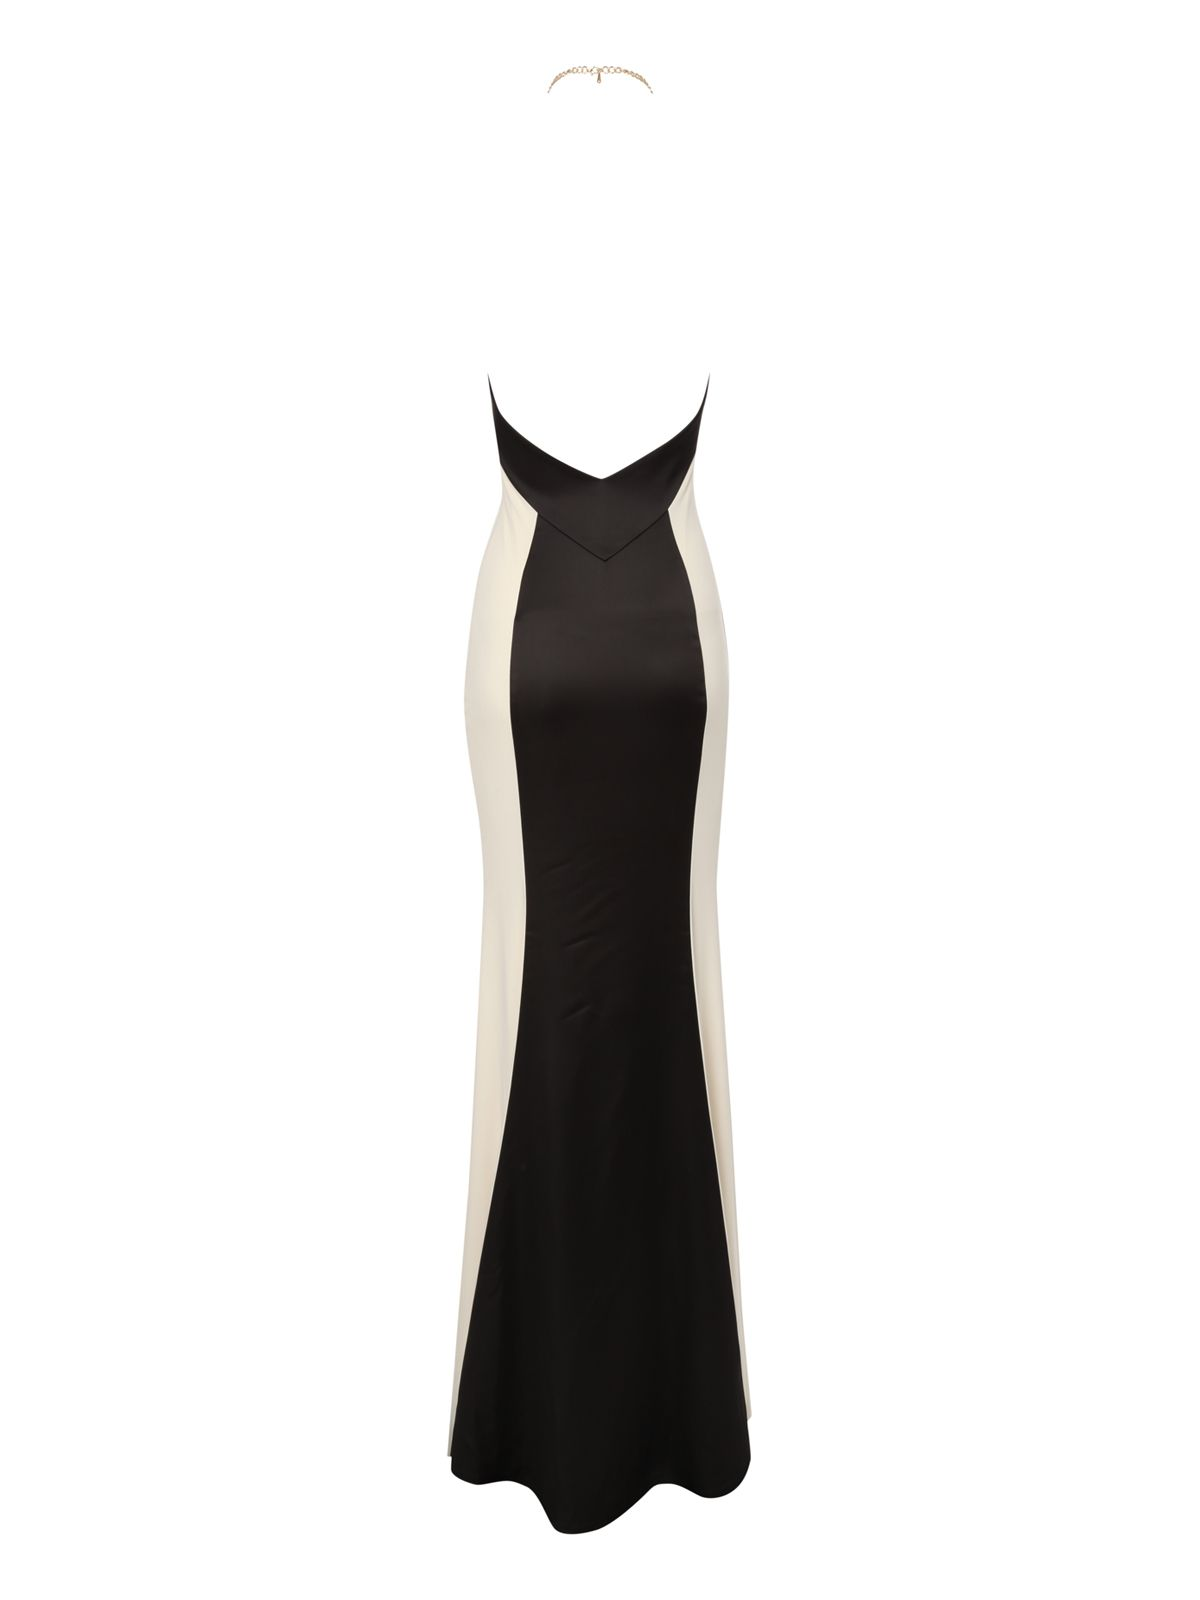 Monochrome halter neck maxi dress